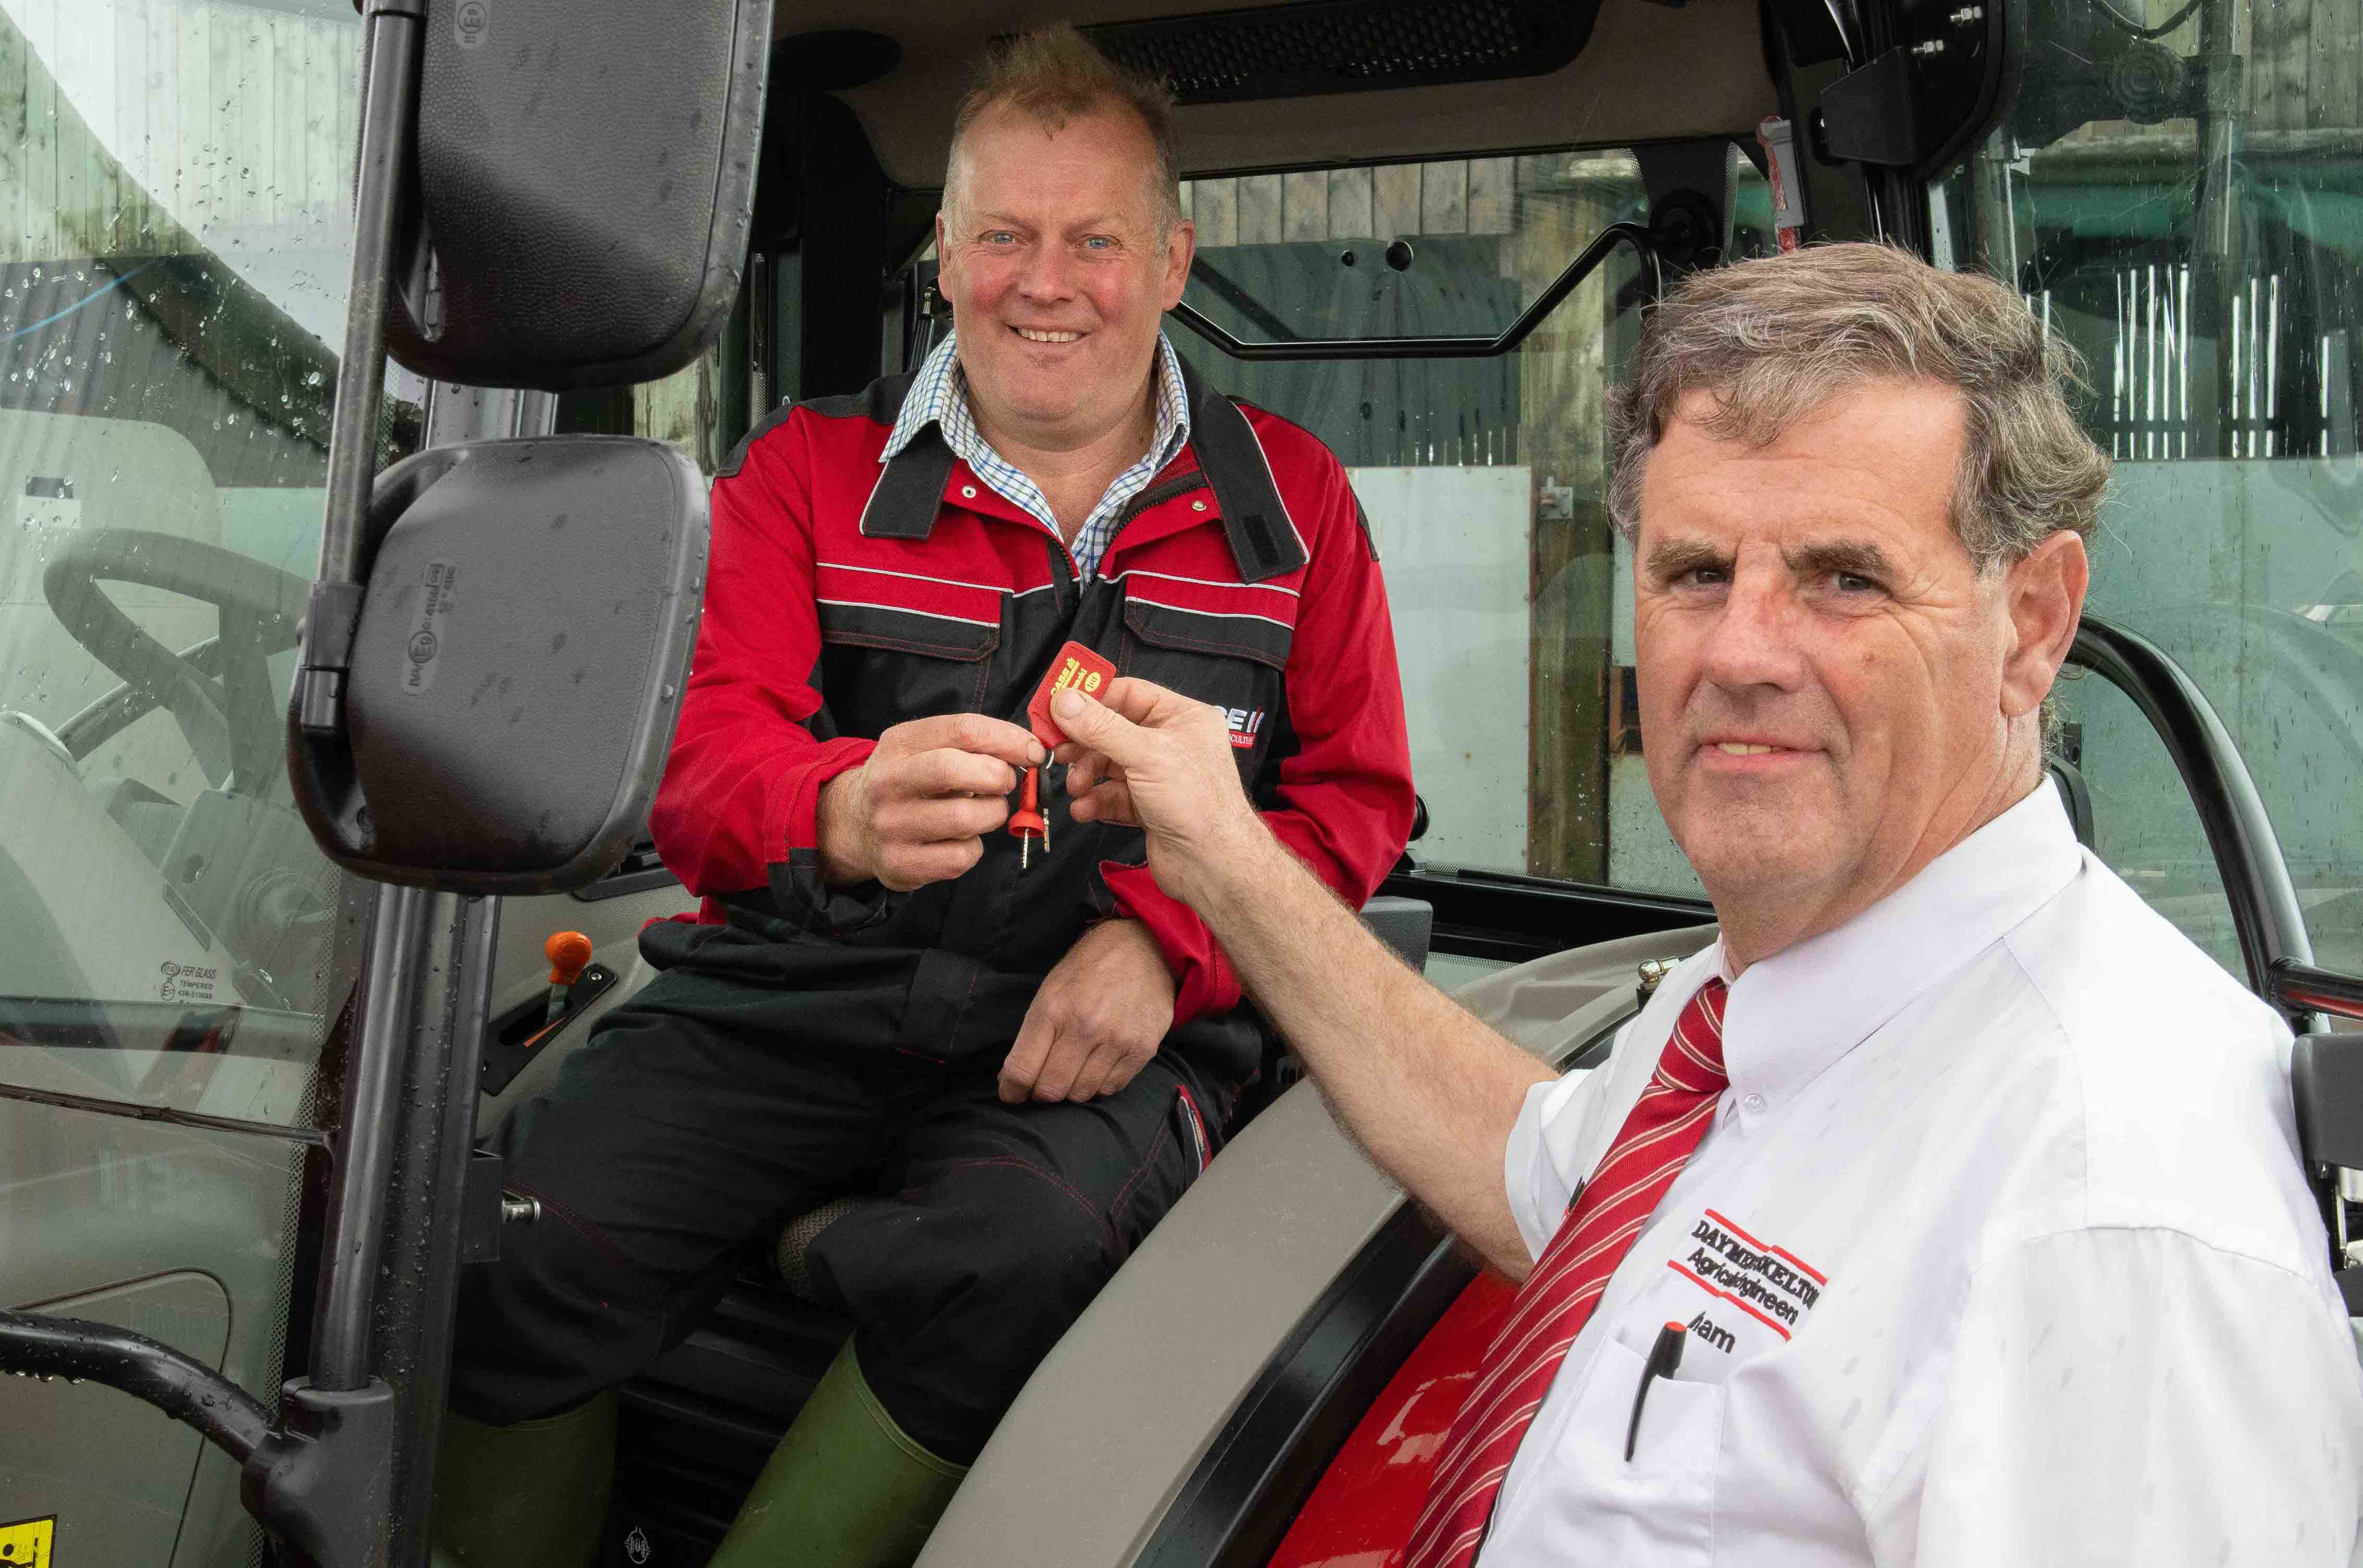 South Devon Farmer wins six months' use of Case IH Farmall A tractor